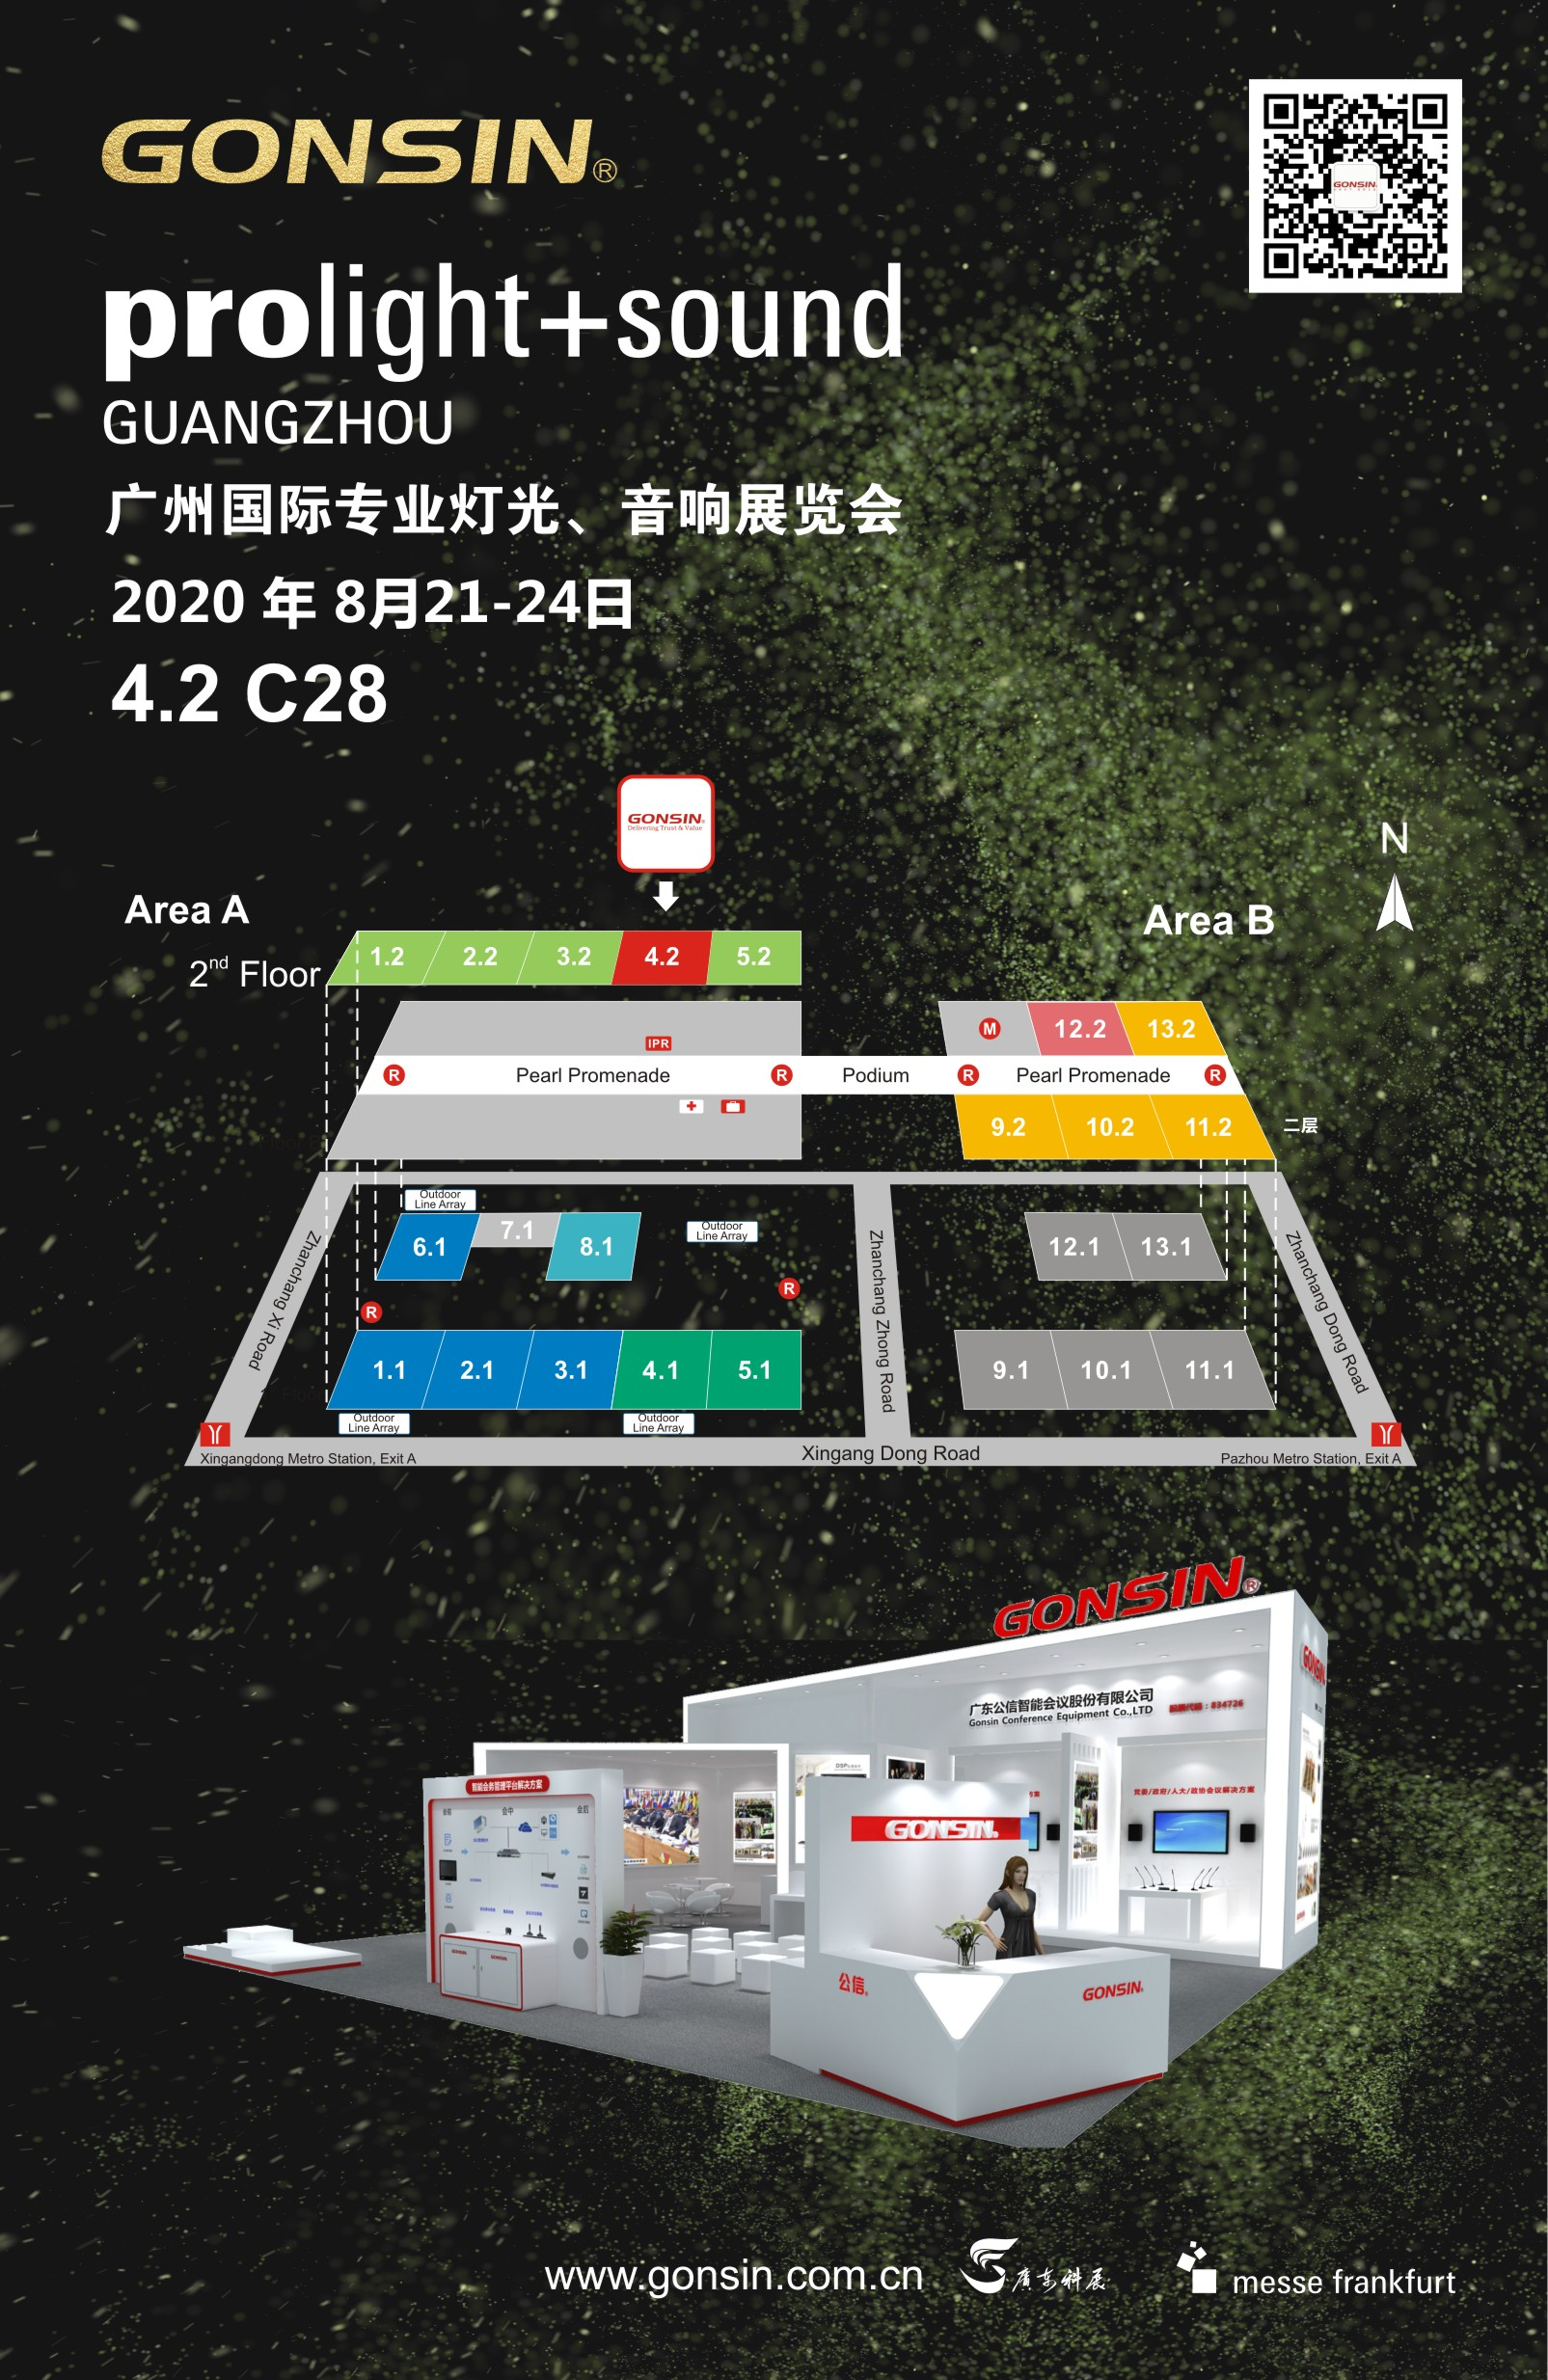 Welcome to Prolight+sound Guangzhou 2020 Exhibition